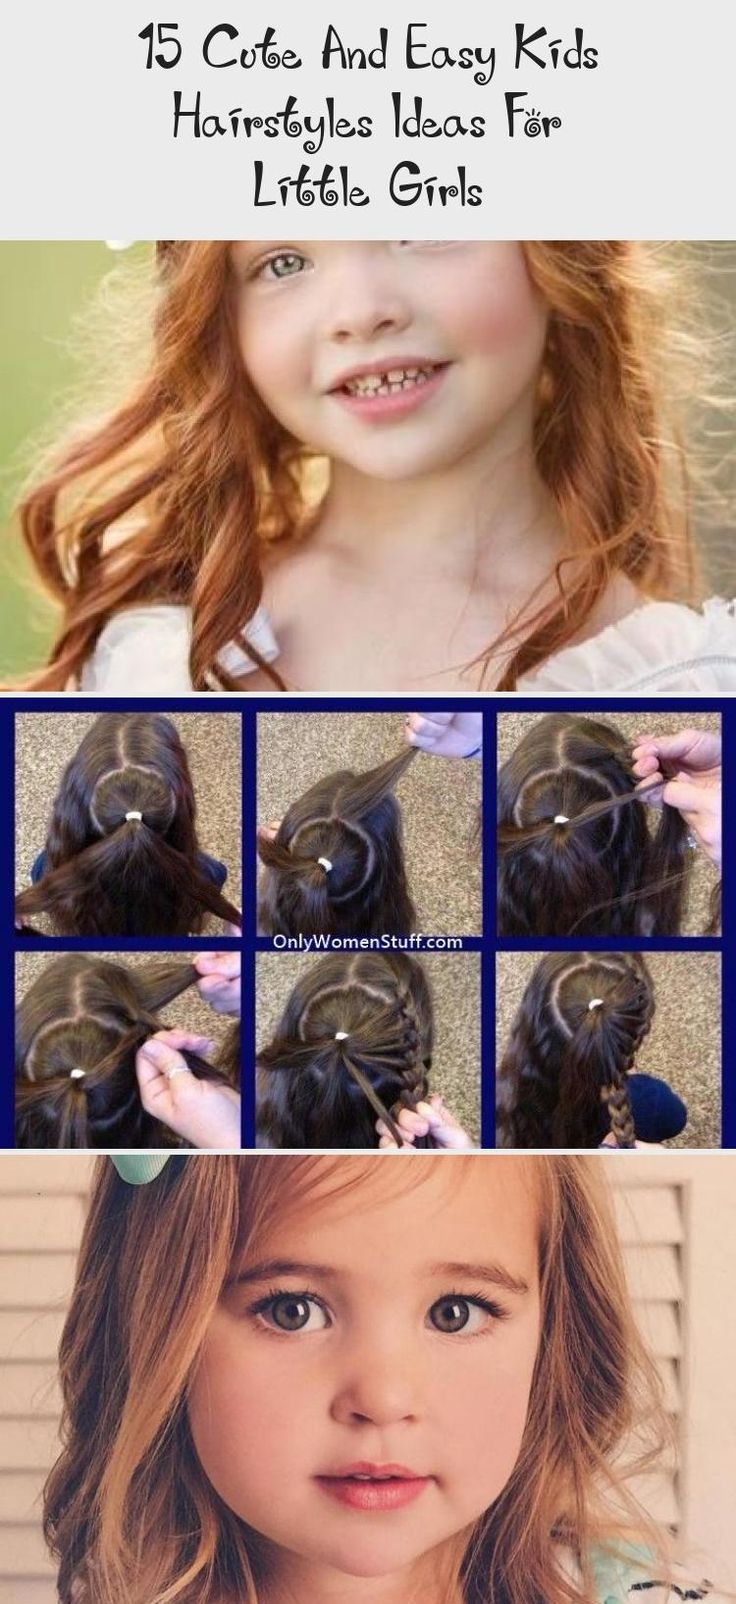 Simple Hairstyle for kids, Best kids hairstyles, Easy Kids Hairstyles, Cute Hairstyles for Little Girls, DIY Hairstyles for Little girls #babyhairstylesWavy #babyhairstylesVideos #babyhairstylesFine #Littlebabyhairstyles #babyhairstylesGel